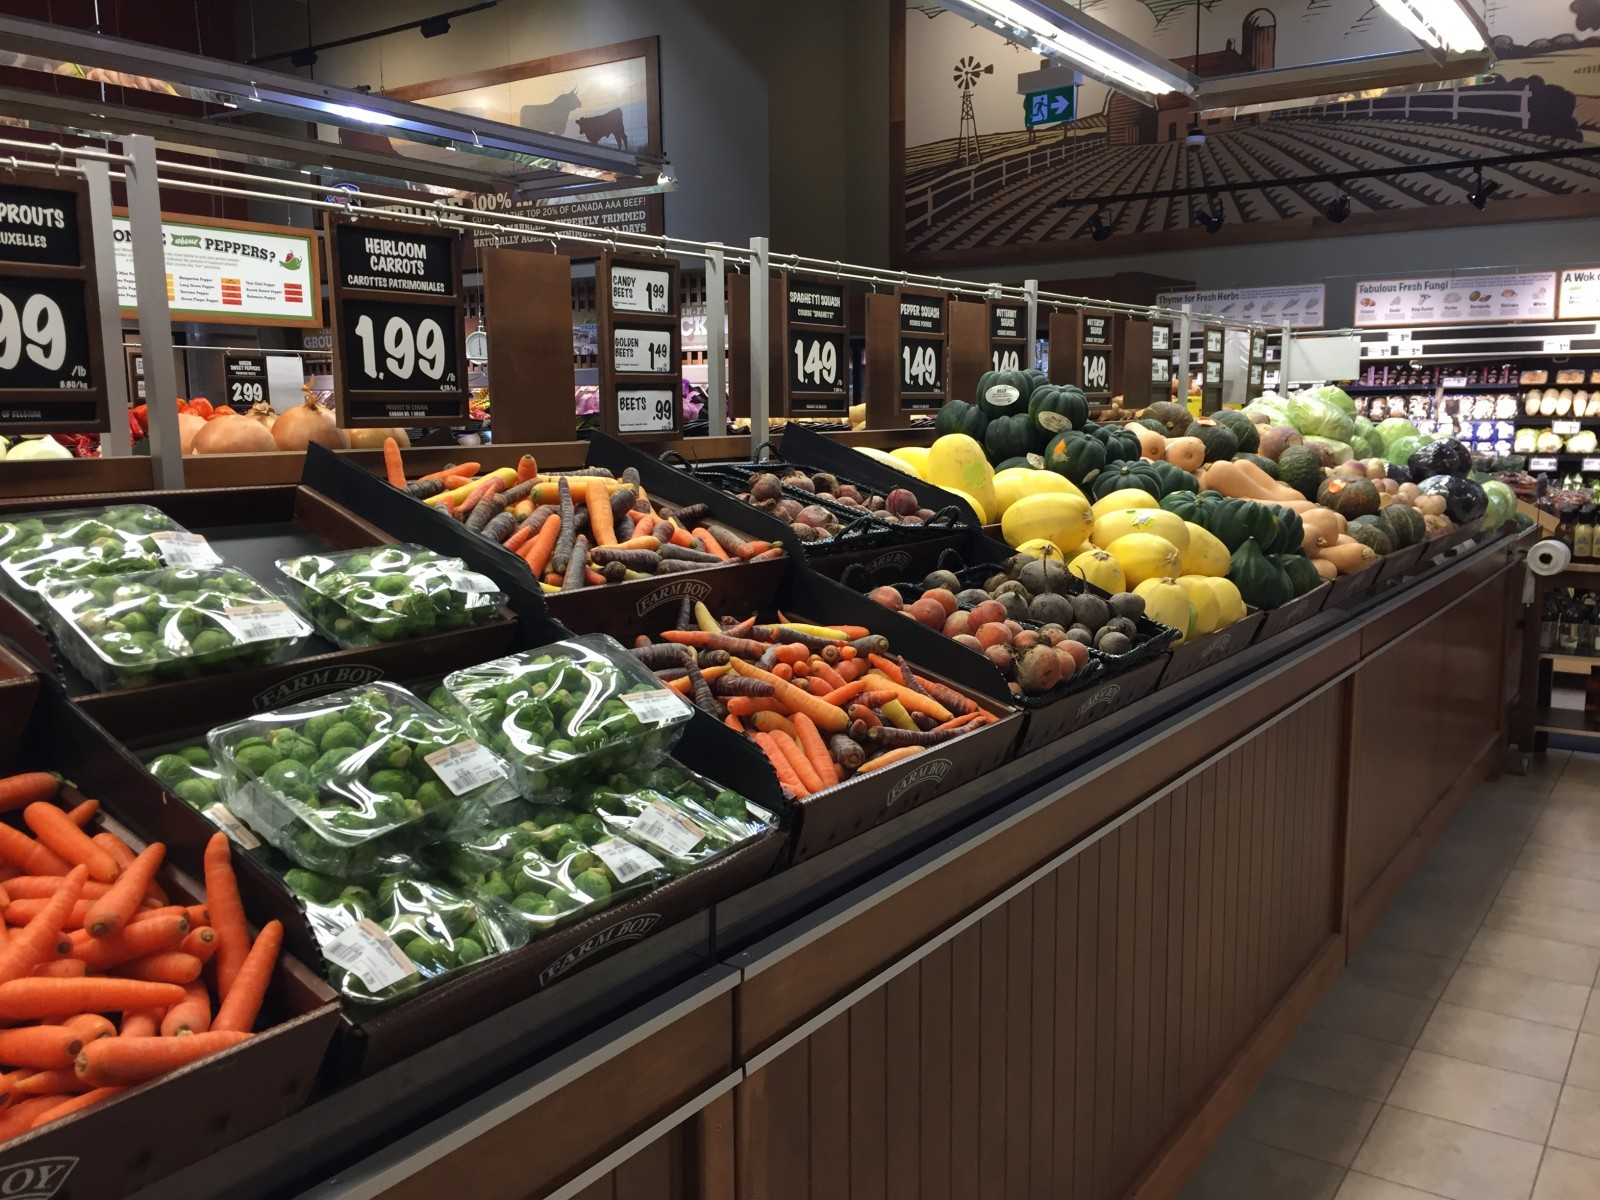 Produce prices continue to increase